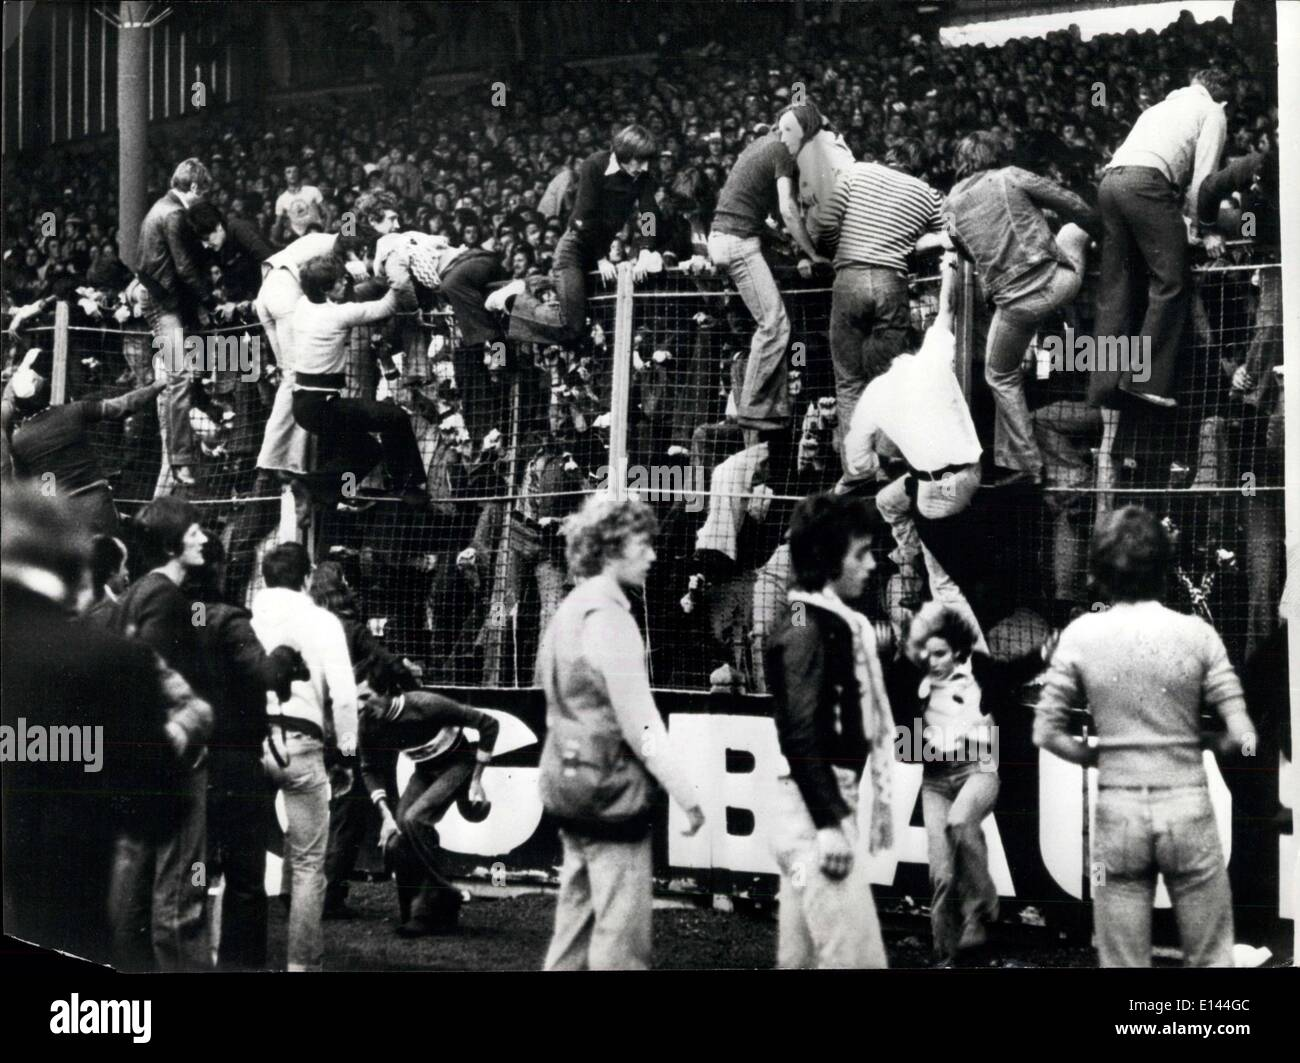 Apr. 04, 2012 - Manchester United Barred From Europe: Owing to the violent rioting by the Manchester United supporters in the match between Manchester United and St. Etienne they have been suspended by Union of European Football Association. Photo Shows: Rioting fans climb over the barriers during the match in France. - Stock Image